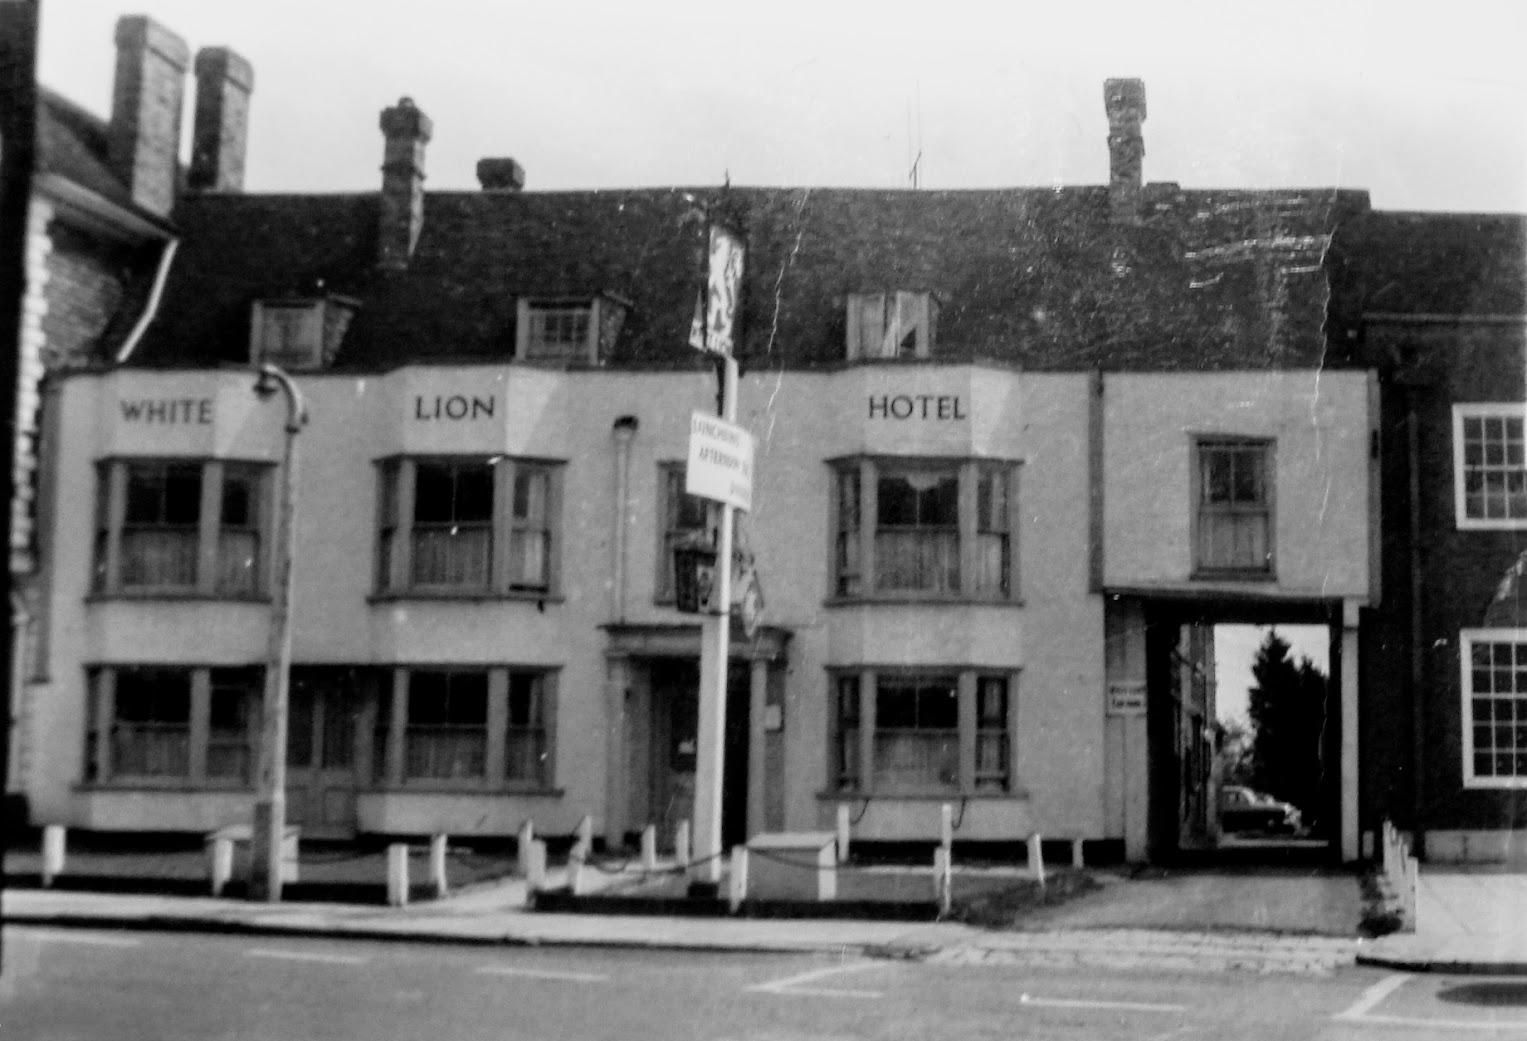 White Lion Hotel, Tenterden High Street 1964